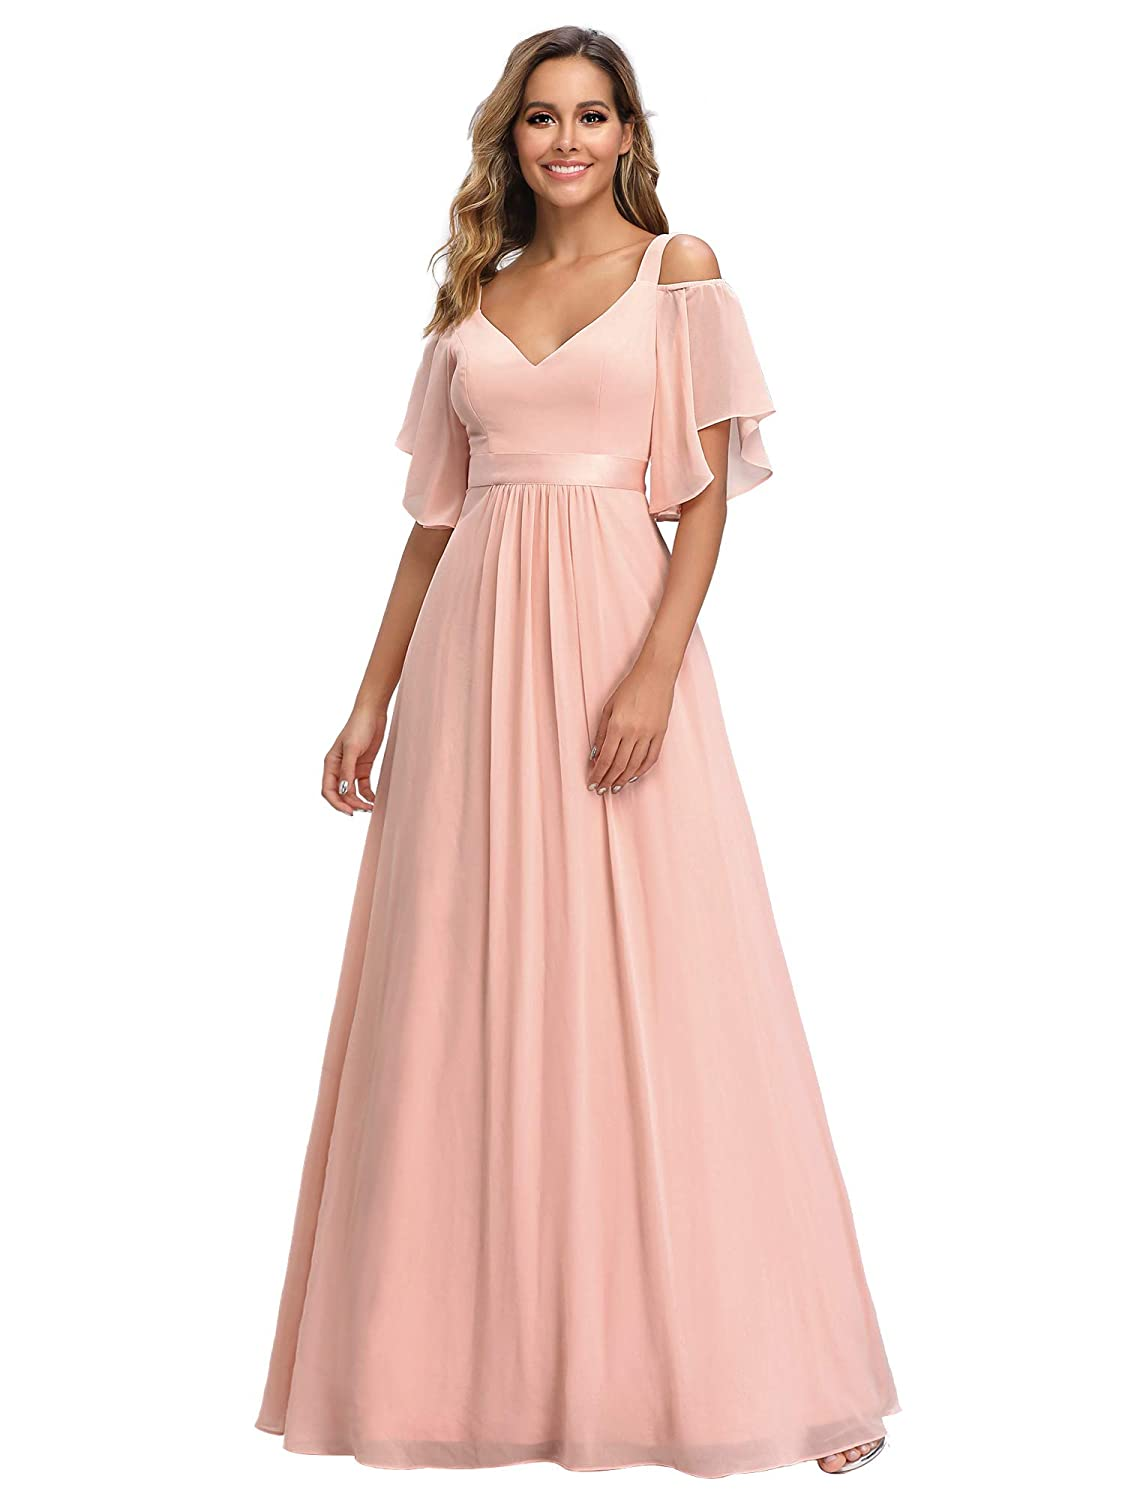 80s Dresses | Casual to Party Dresses Ever-Pretty Womens A-Line Cold Shoulder Bridesmaid Dress Evening Gowns 7871 $54.99 AT vintagedancer.com